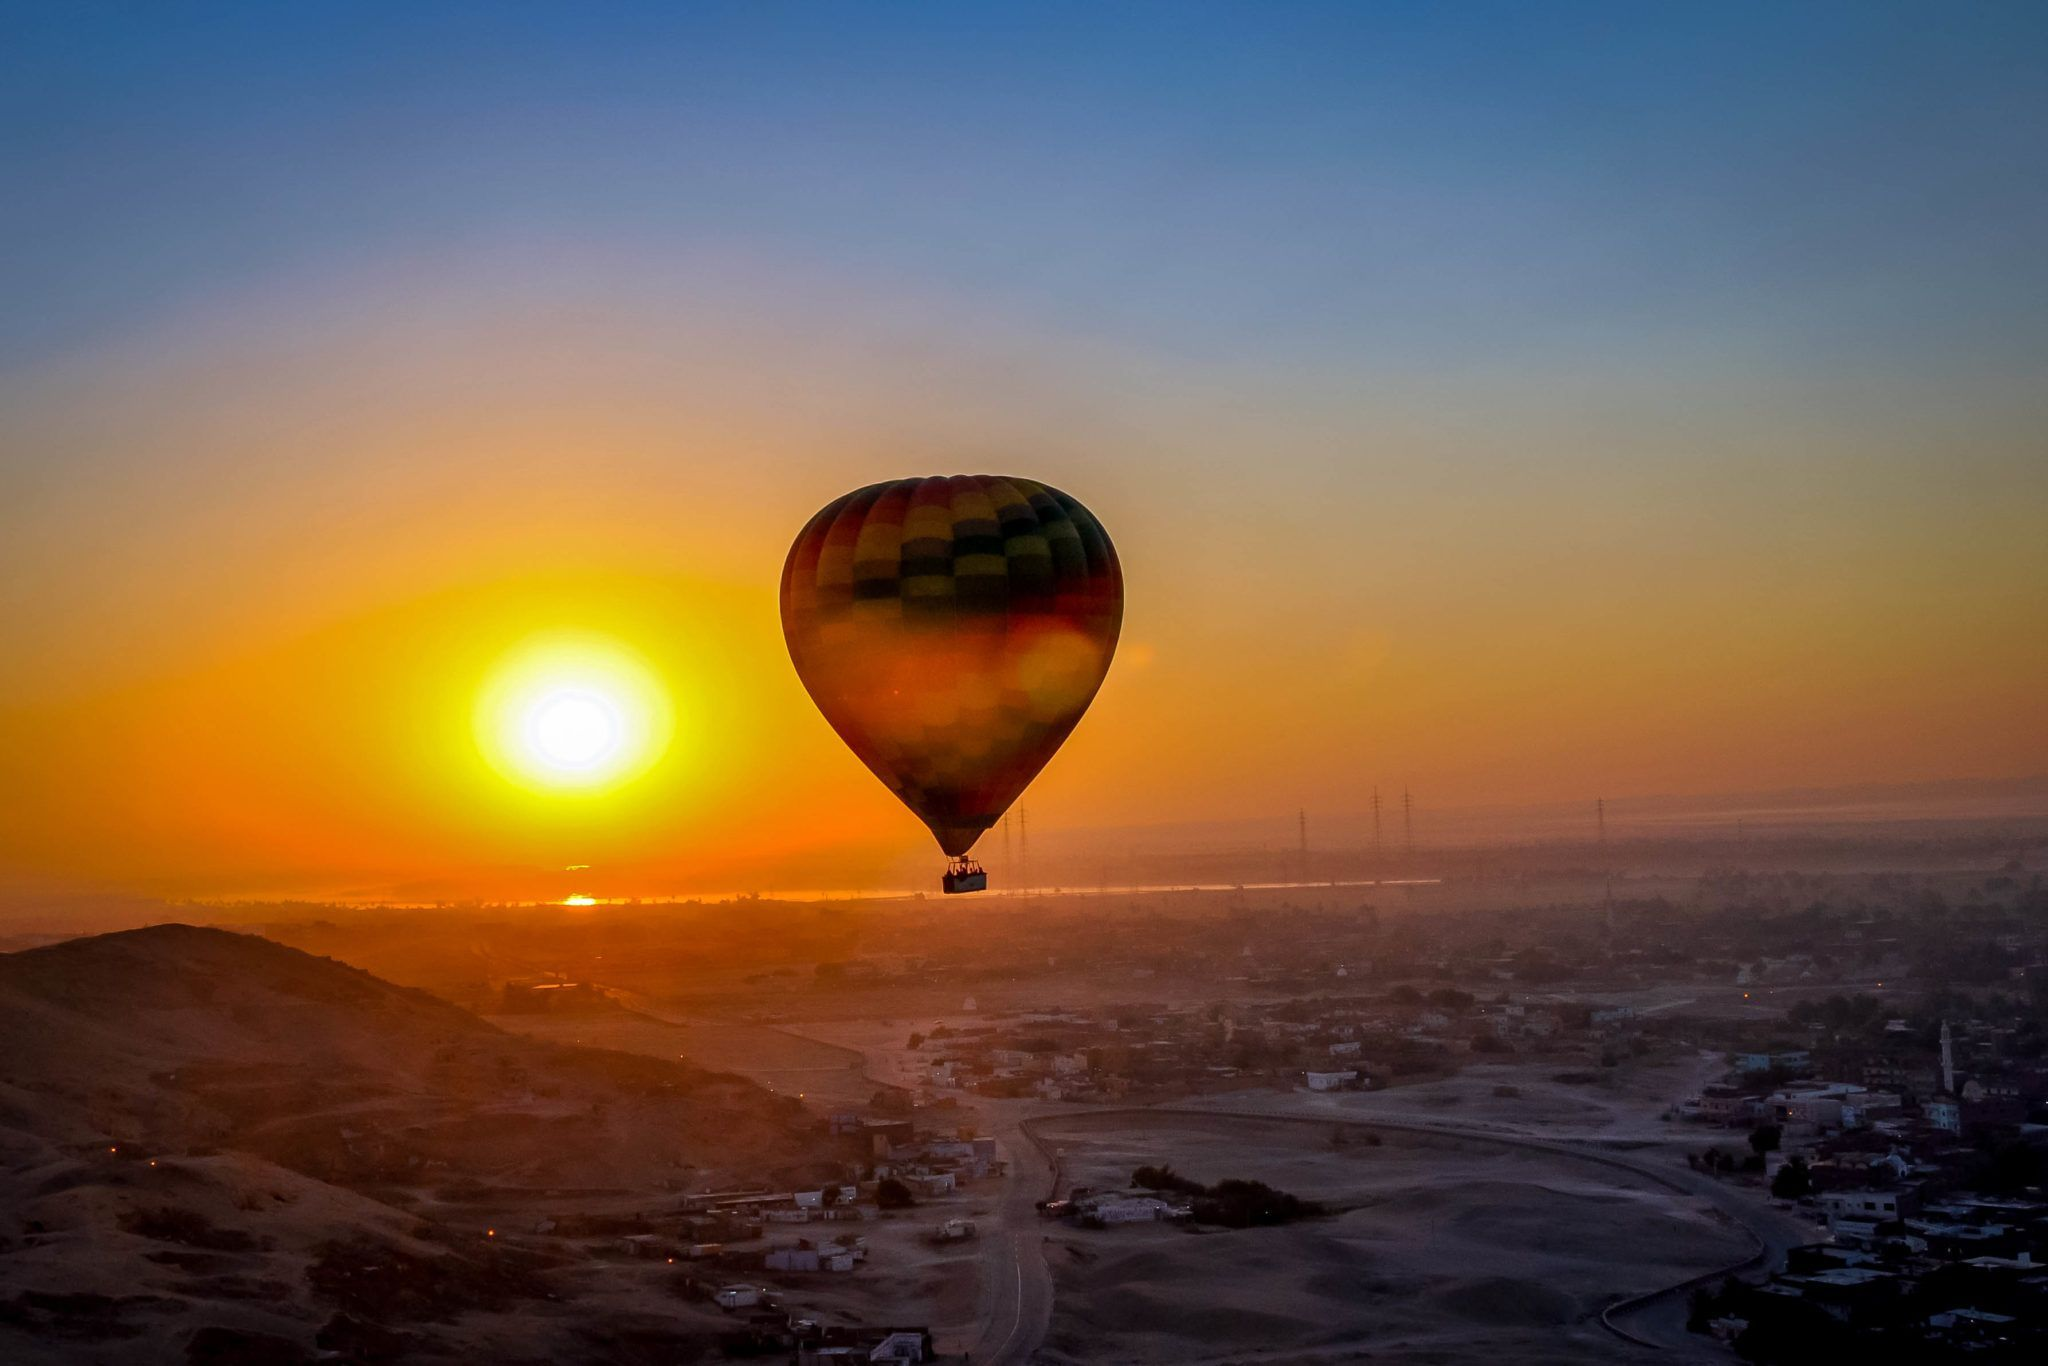 Hot air balloon over the Valley of the Kings